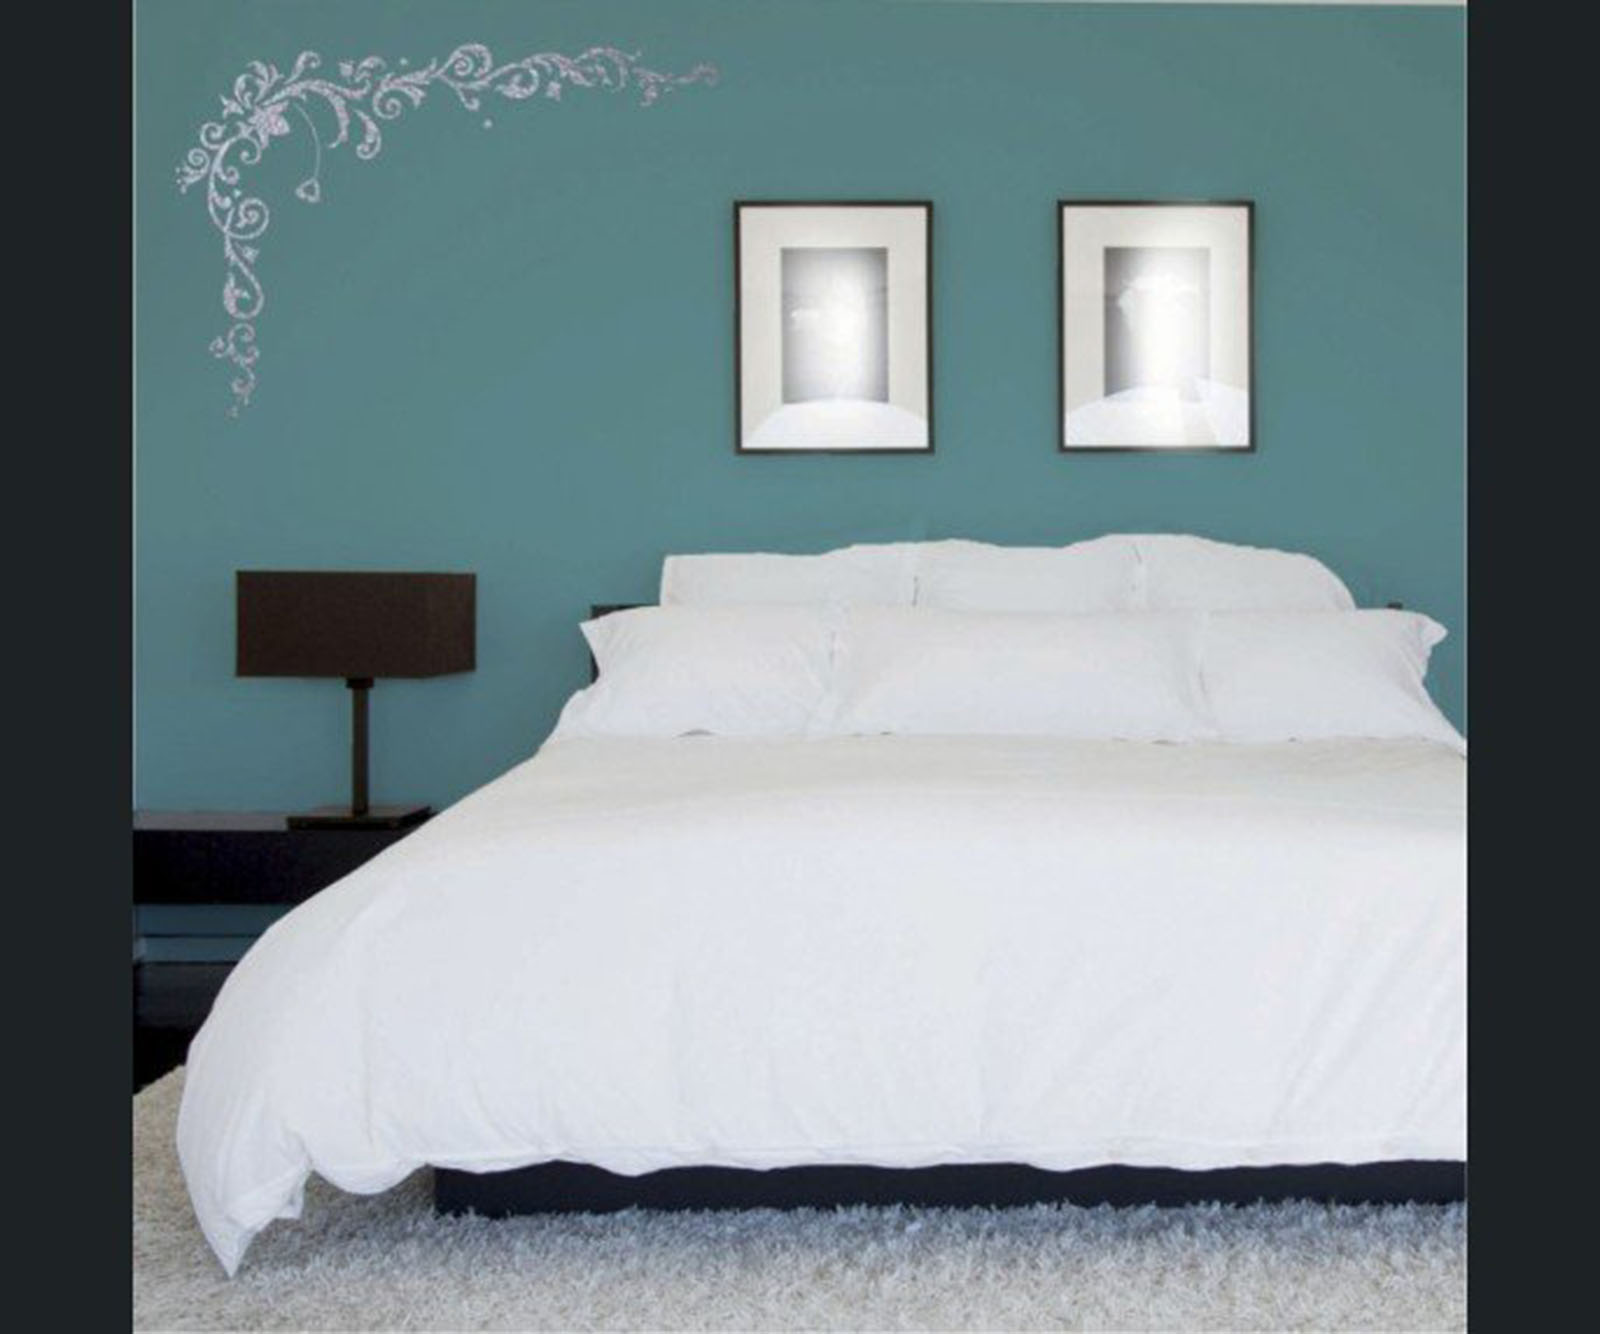 les couleurs de la nuit pour une chambre coucher viving. Black Bedroom Furniture Sets. Home Design Ideas